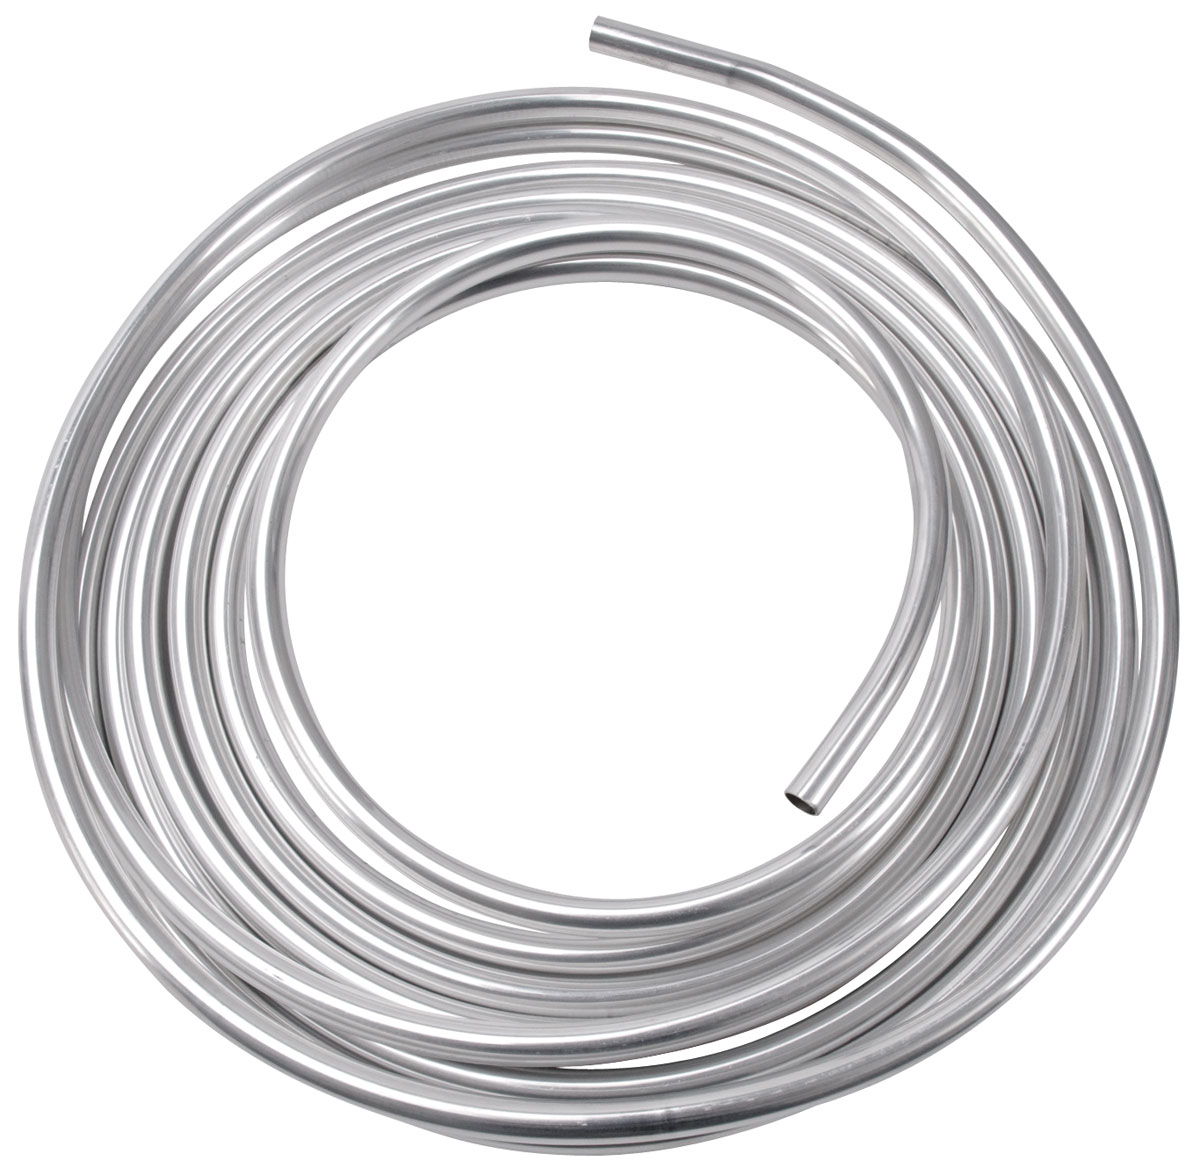 "Photo of Fuel Lines, Russell Aluminum 3/8"", natural"